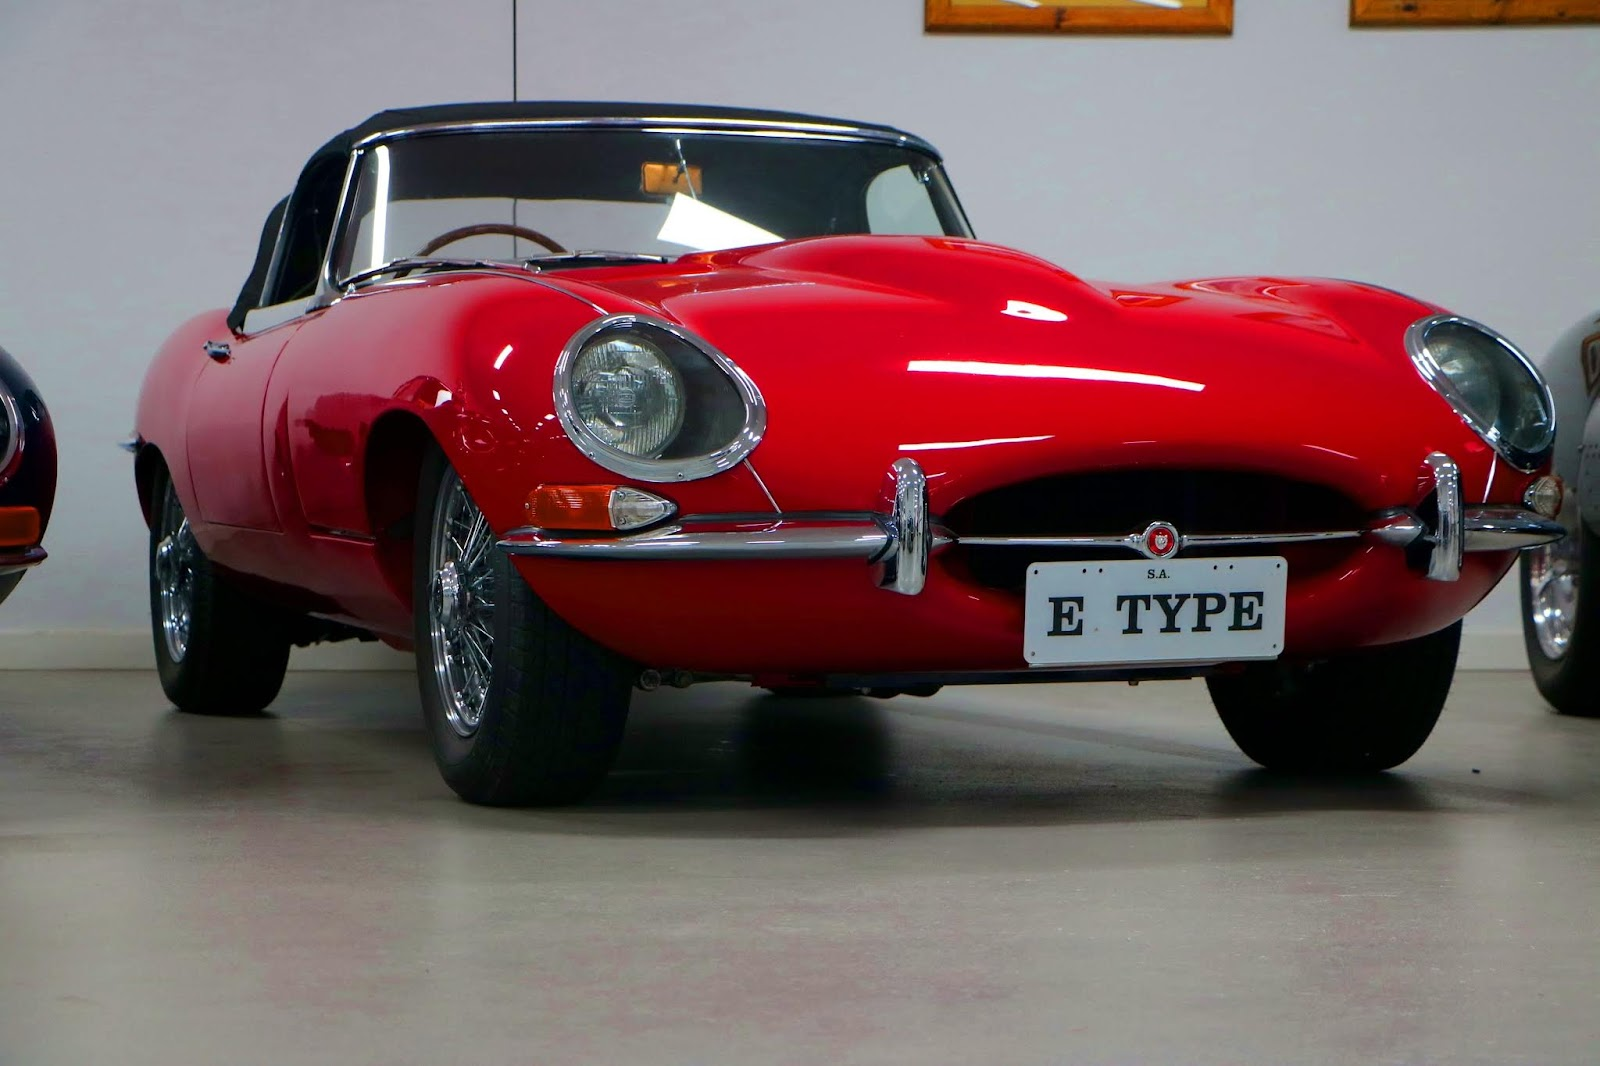 Carl_Lindner_Collection - 1963 Jaguar E-Type Series 1 Roadster 07.jpg